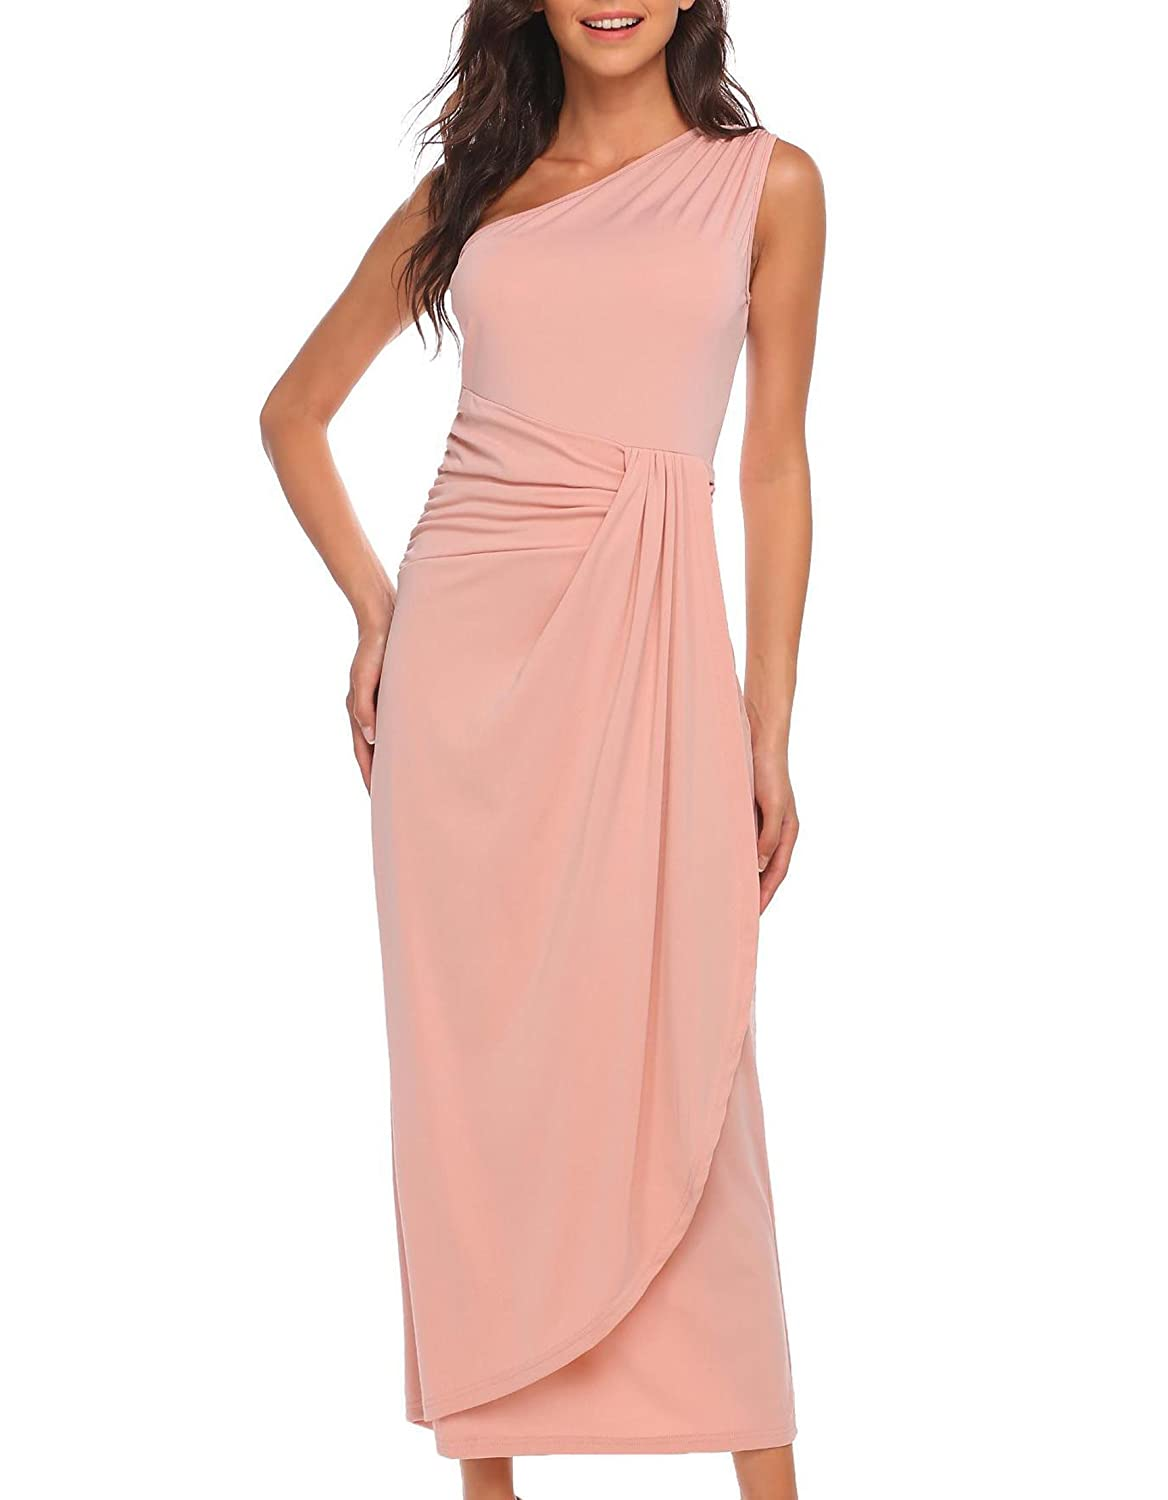 af0b2e528c Etuoji Women s One Shoulder Full Length Ruched Wrap Elegant Evening Party Gown  Dress at Amazon Women s Clothing store